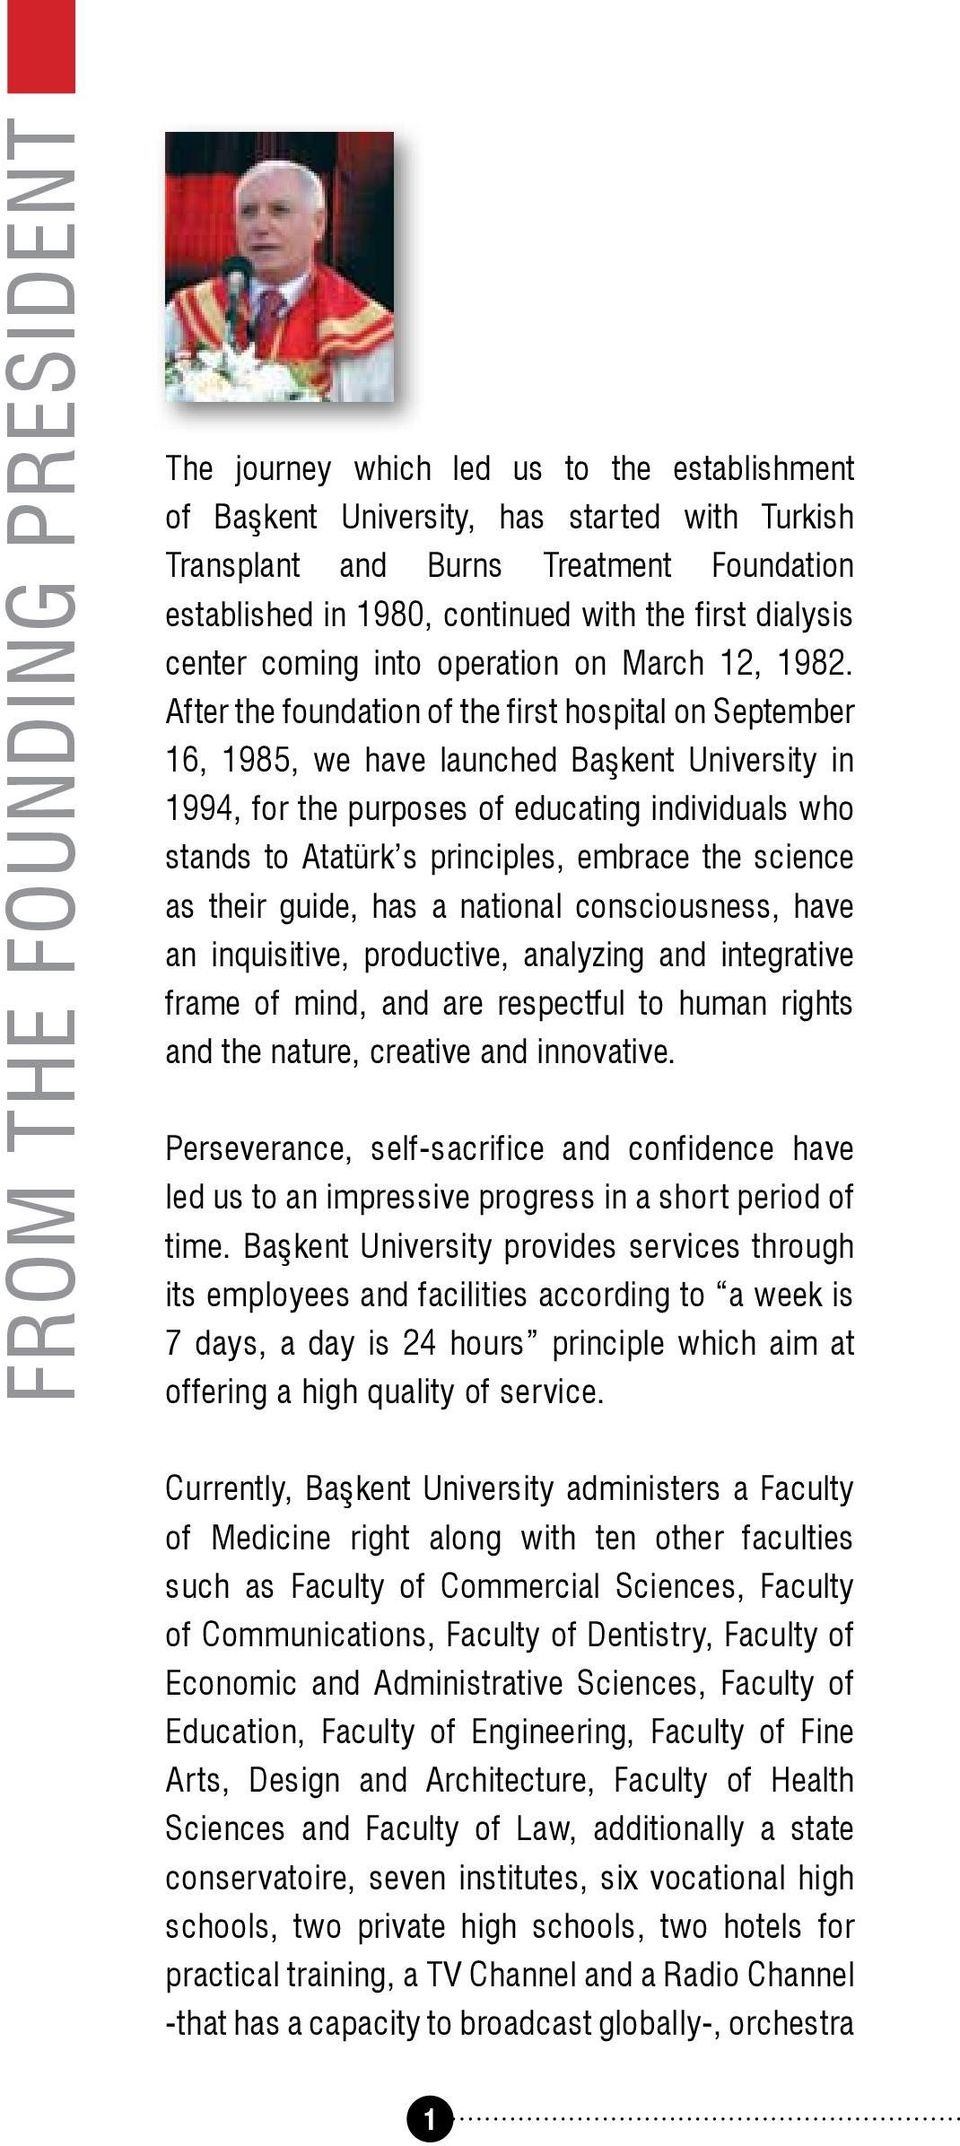 After the foundation of the first hospital on September 16, 1985, we have launched Başkent University in 1994, for the purposes of educating individuals who stands to Atatürk s principles, embrace